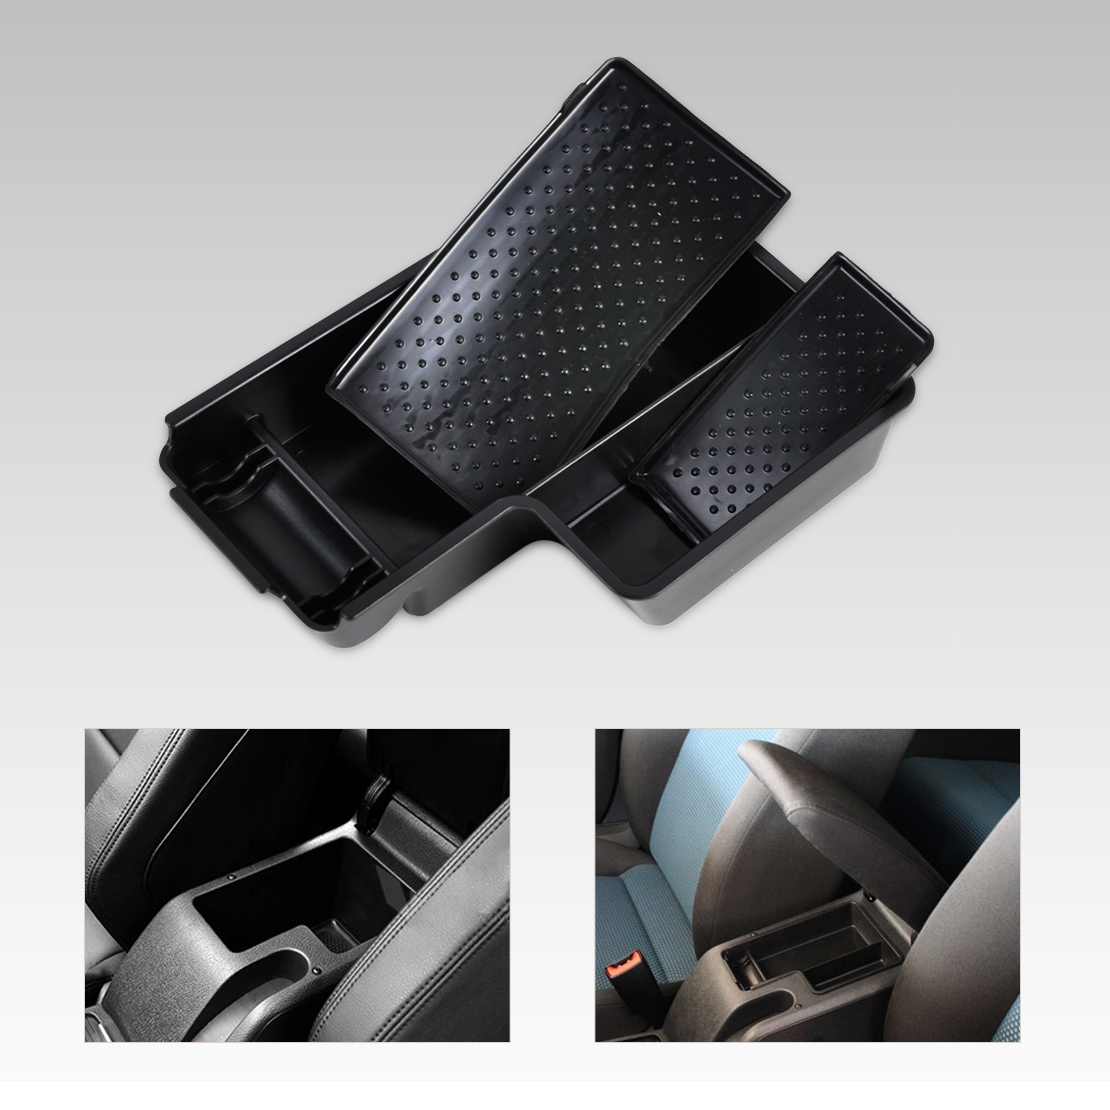 Vw leather driving gloves - New Car Styling High Quality Abs Plastics Glove Box Auto Armrest Secondary Storage Box For Vw